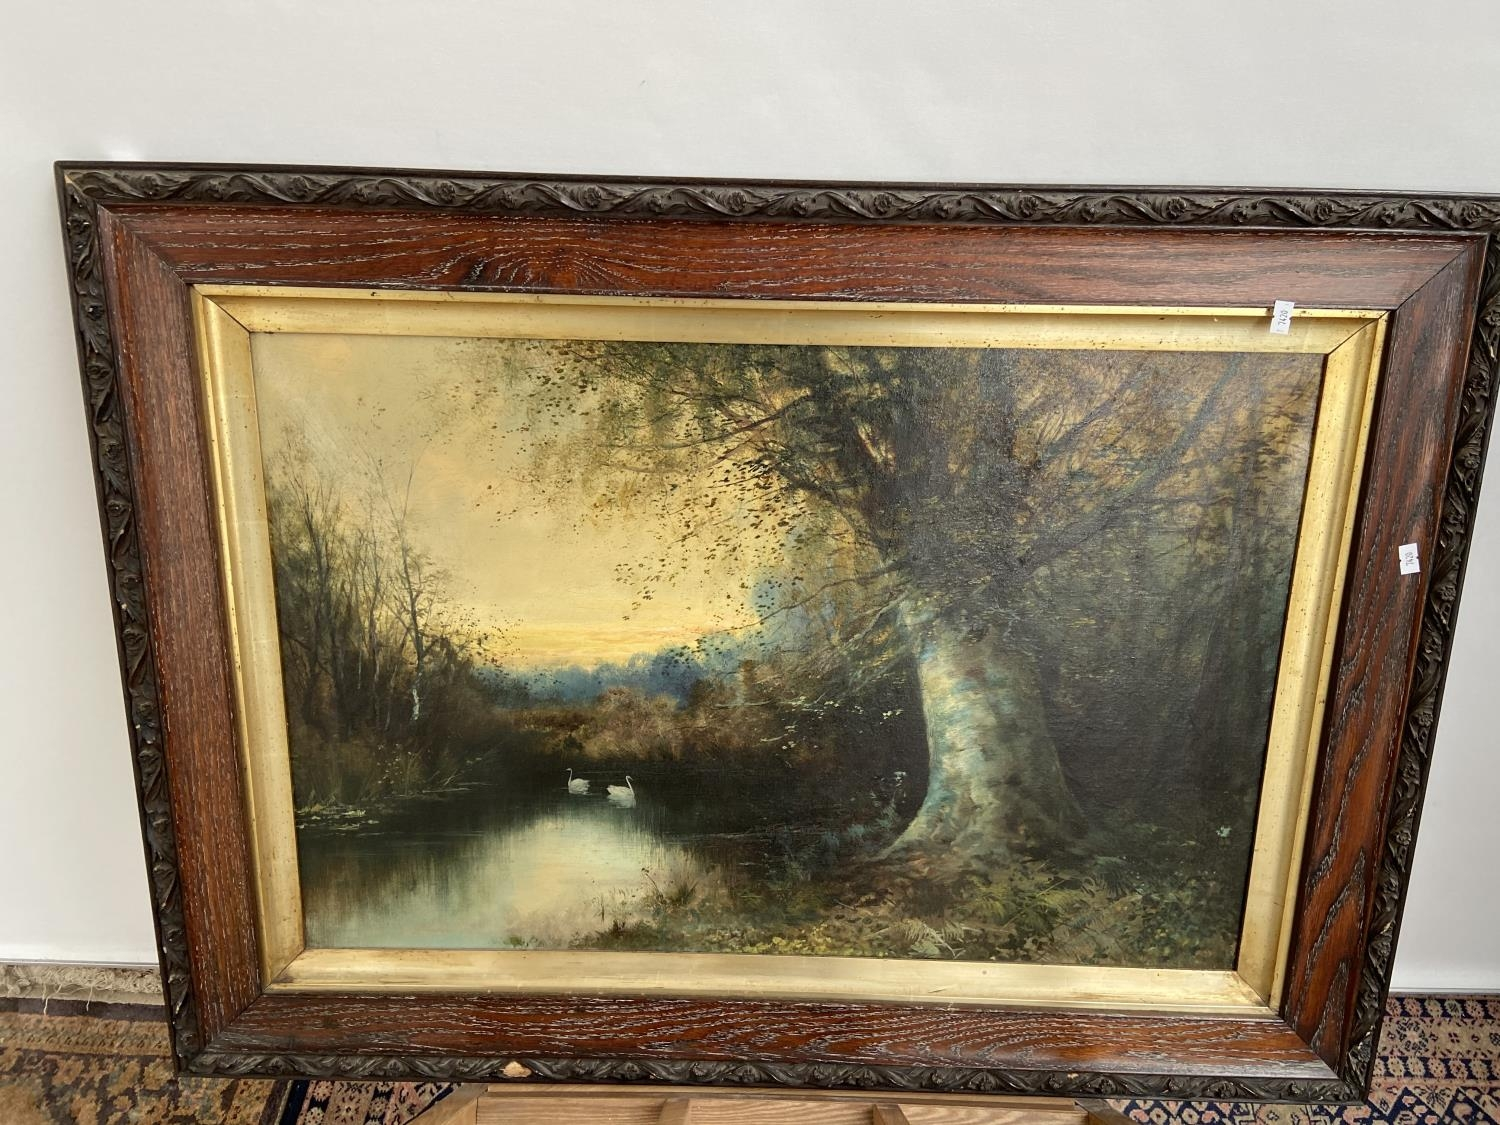 A 19th century oil painting on canvas depicting lake and forestry area scene. Fitted in a dark oak